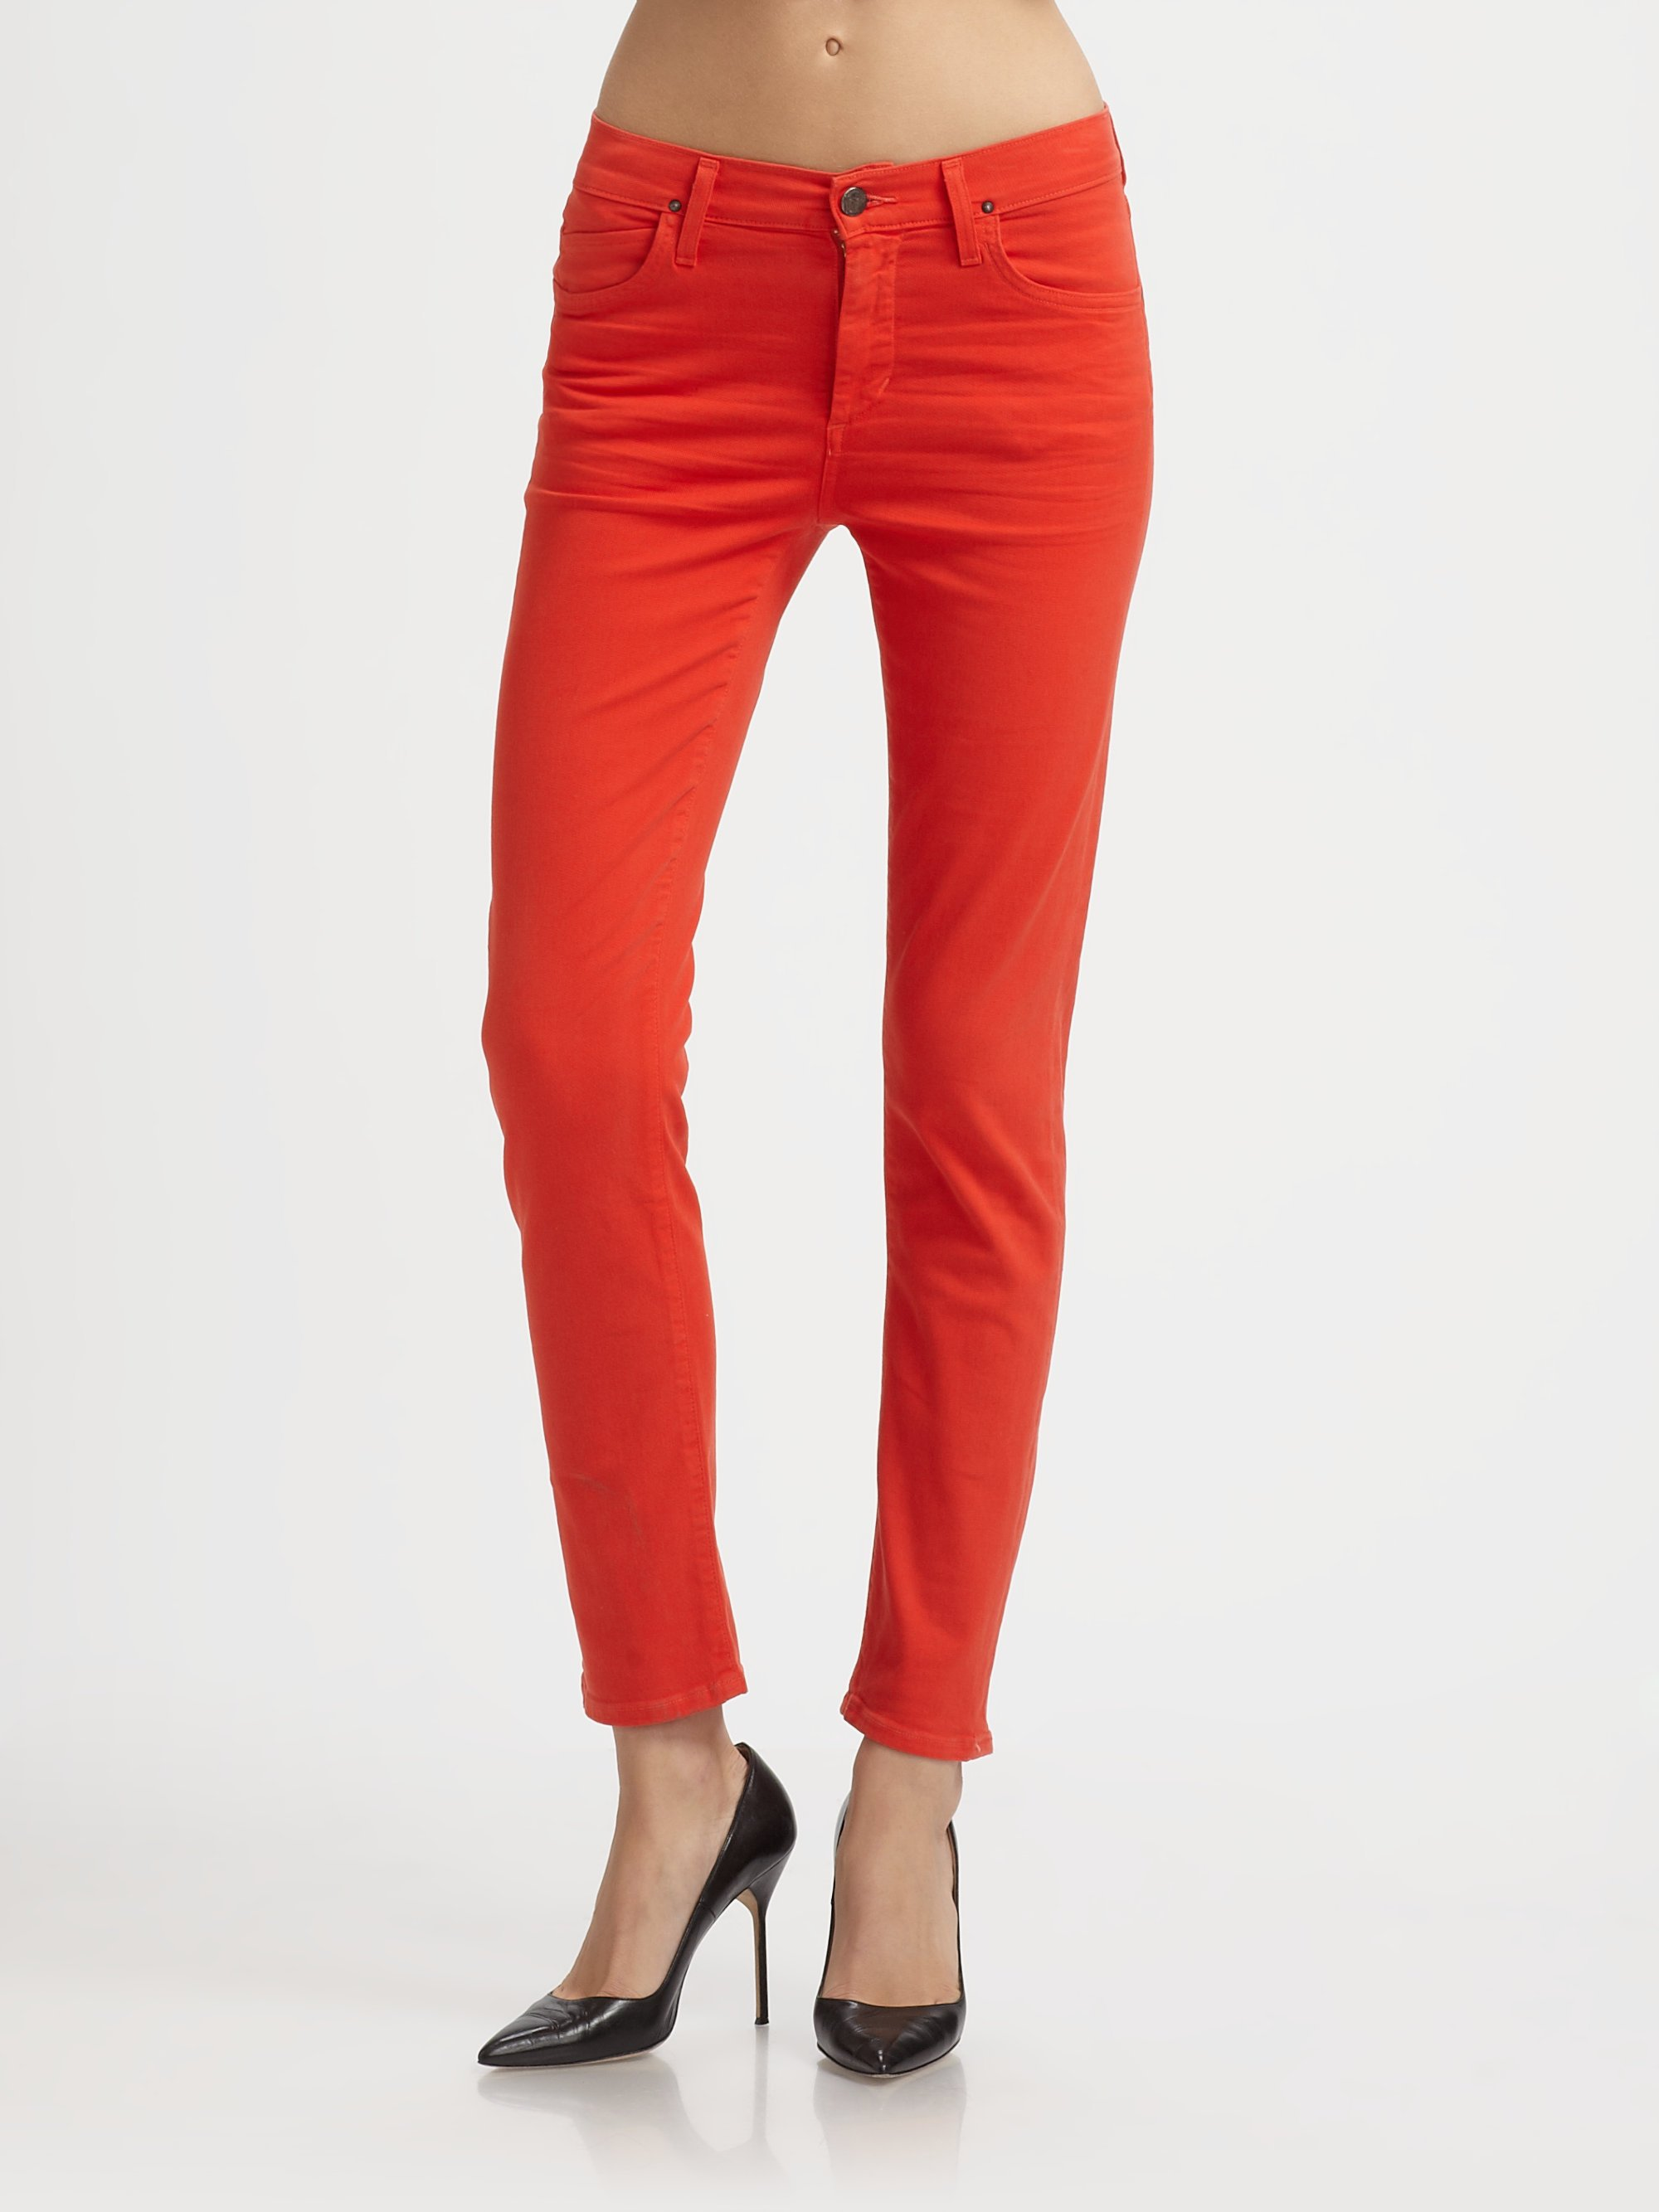 Citizens of humanity Estate Twill Skinny Jeans in Red | Lyst